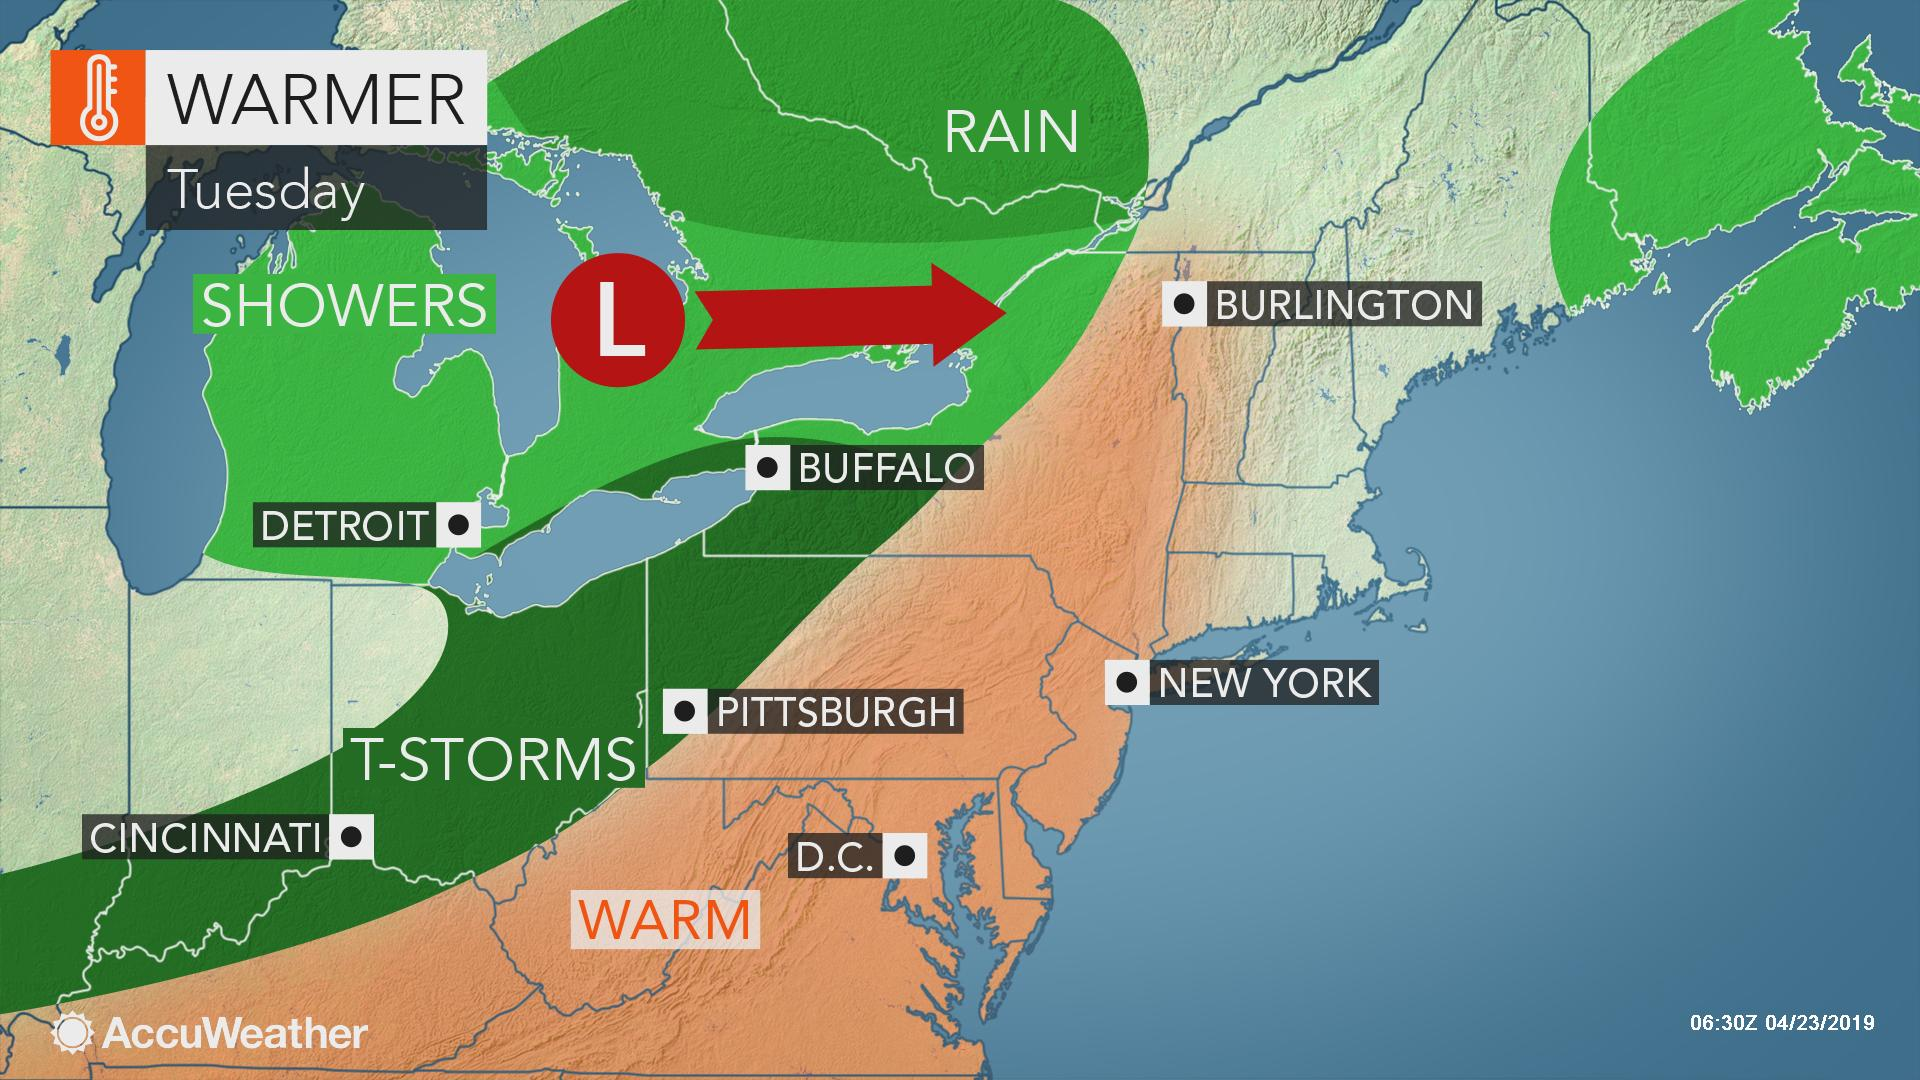 Heavy, gusty thunderstorms to rumble from New York state to